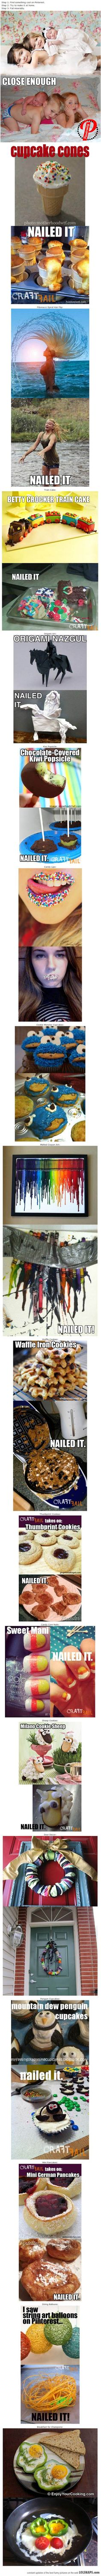 Step 1: Find something on Pinterest  Step 2: Try to make it at home  Step 3: Fail miserably  Hehehe... some of these really made me giggle!!